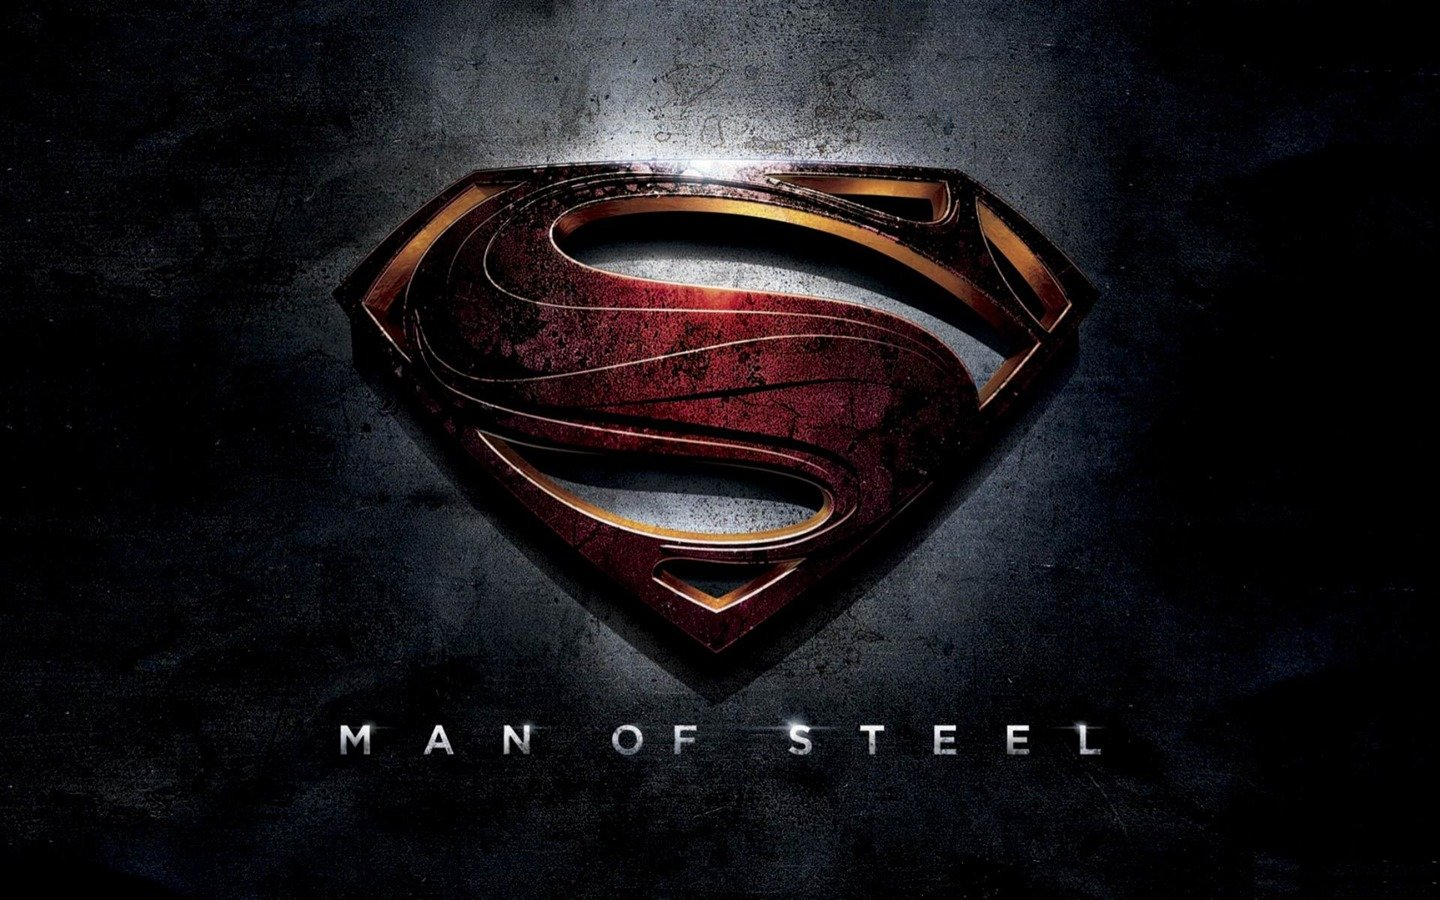 Superman Man Of Steel 2013 Movie HD Wallpaper 04   1440x900 wallpaper 1440x900